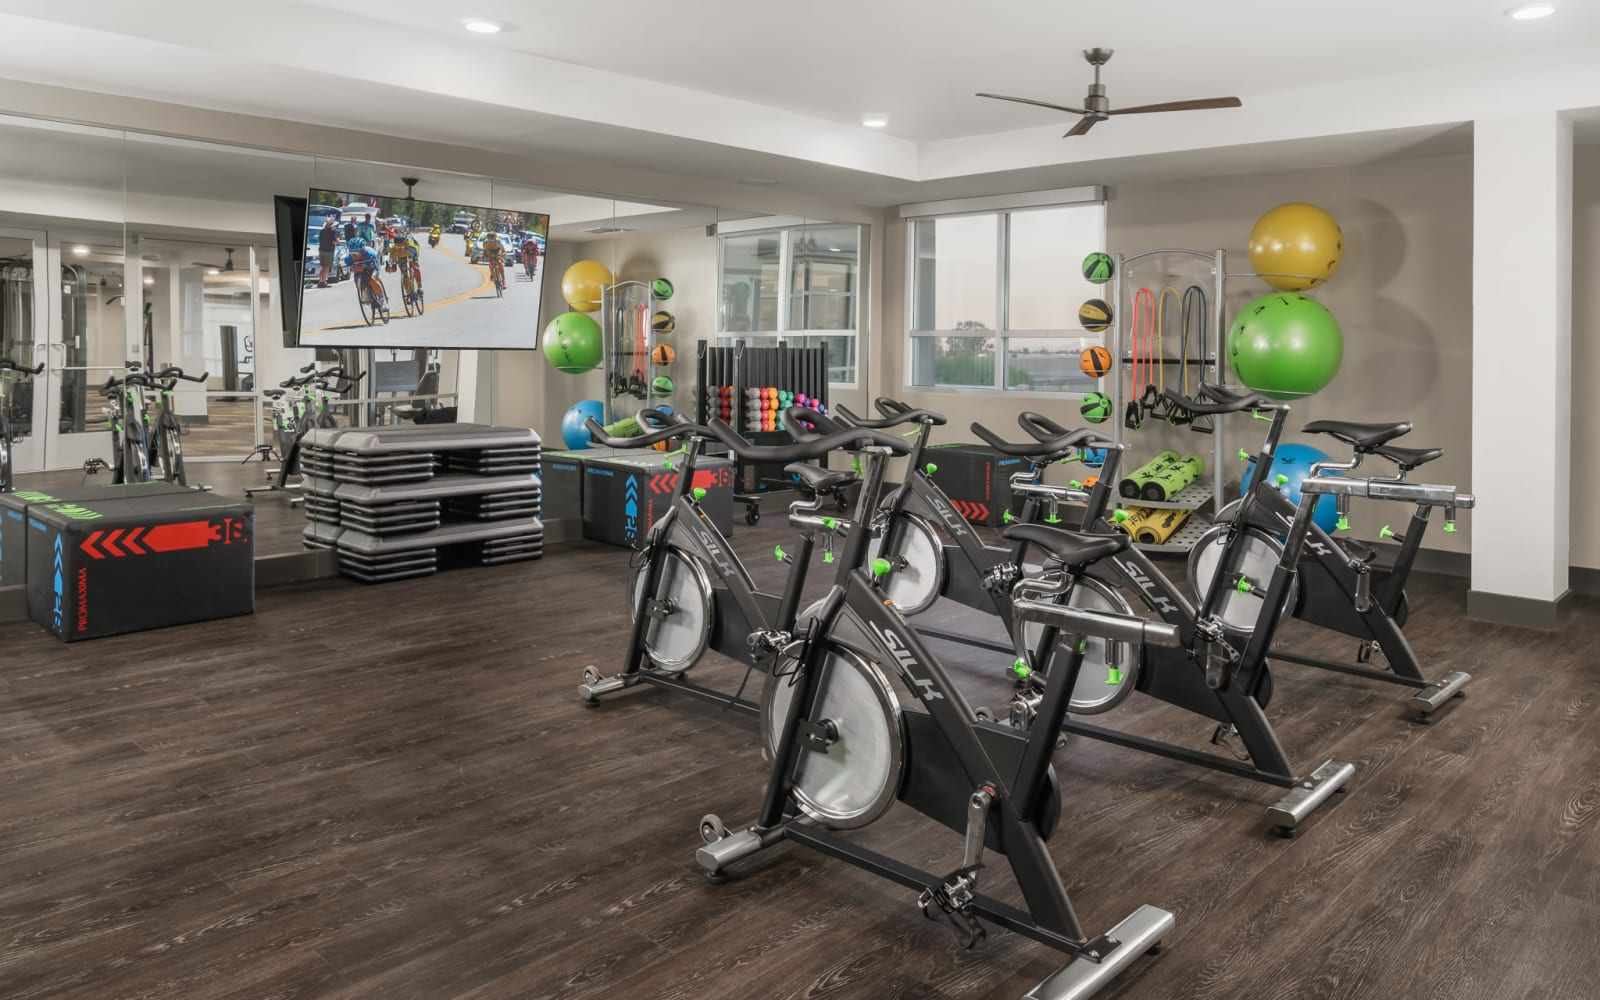 District at Scottsdale fitness center and spin bikes